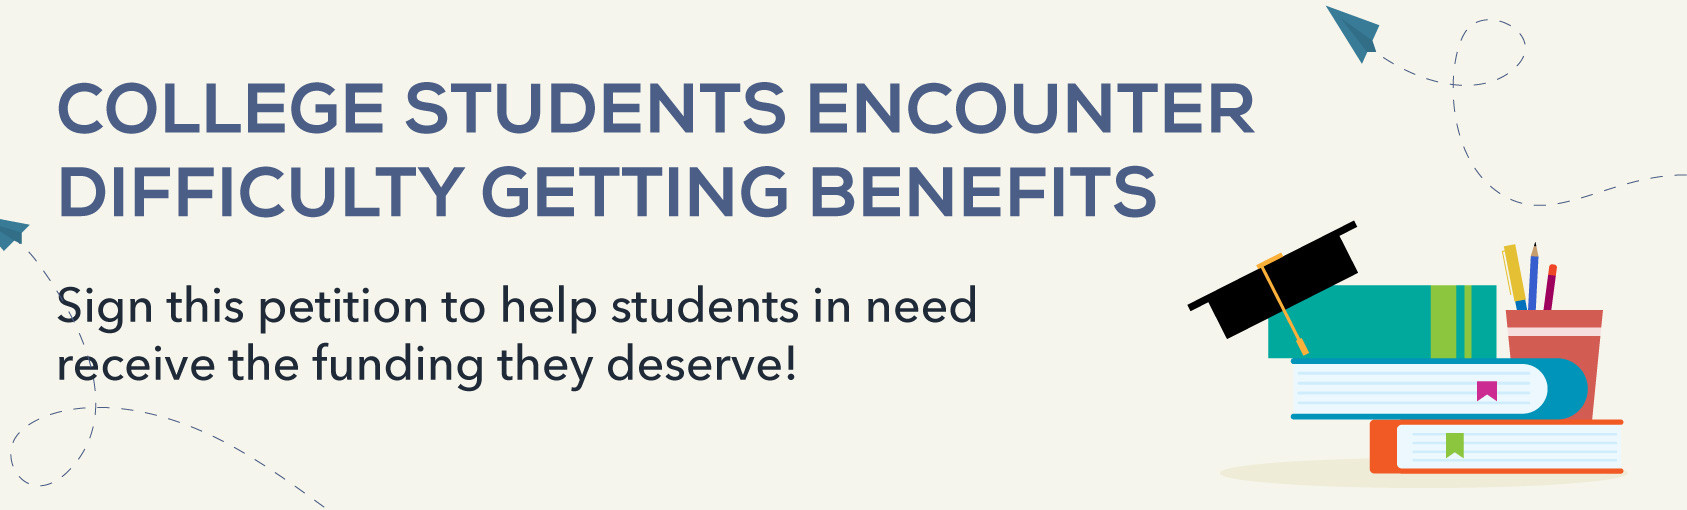 College Students Encounter Difficulty Getting Benefits banner